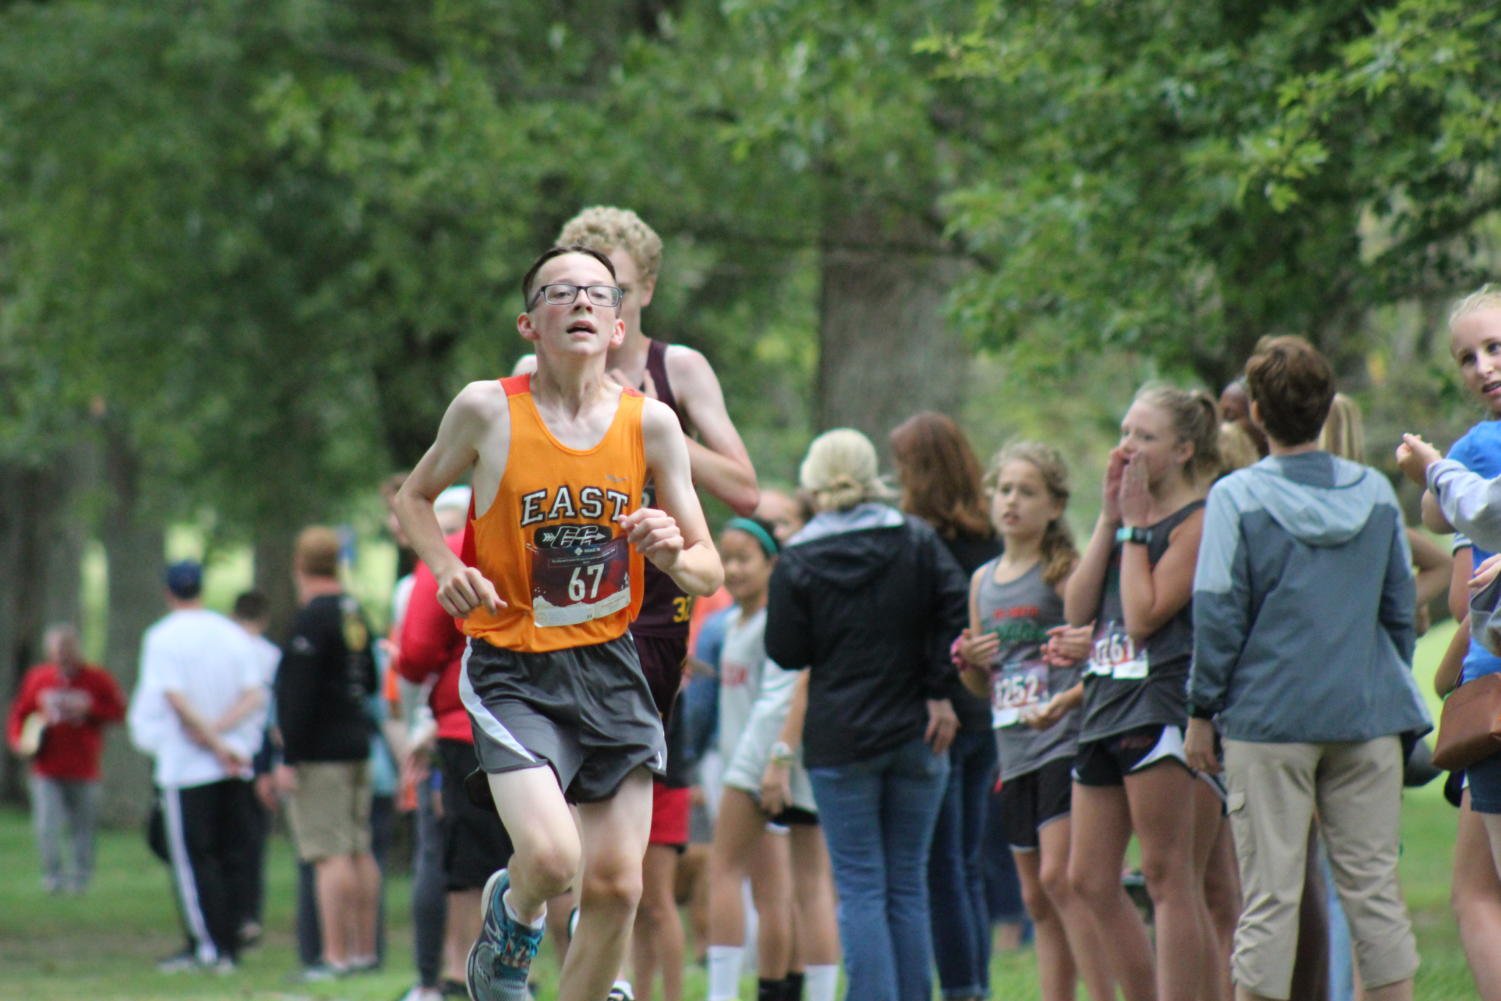 Freshman+Cayden+Lynott+puts+in+his+last+efforts+to+finish+strong.